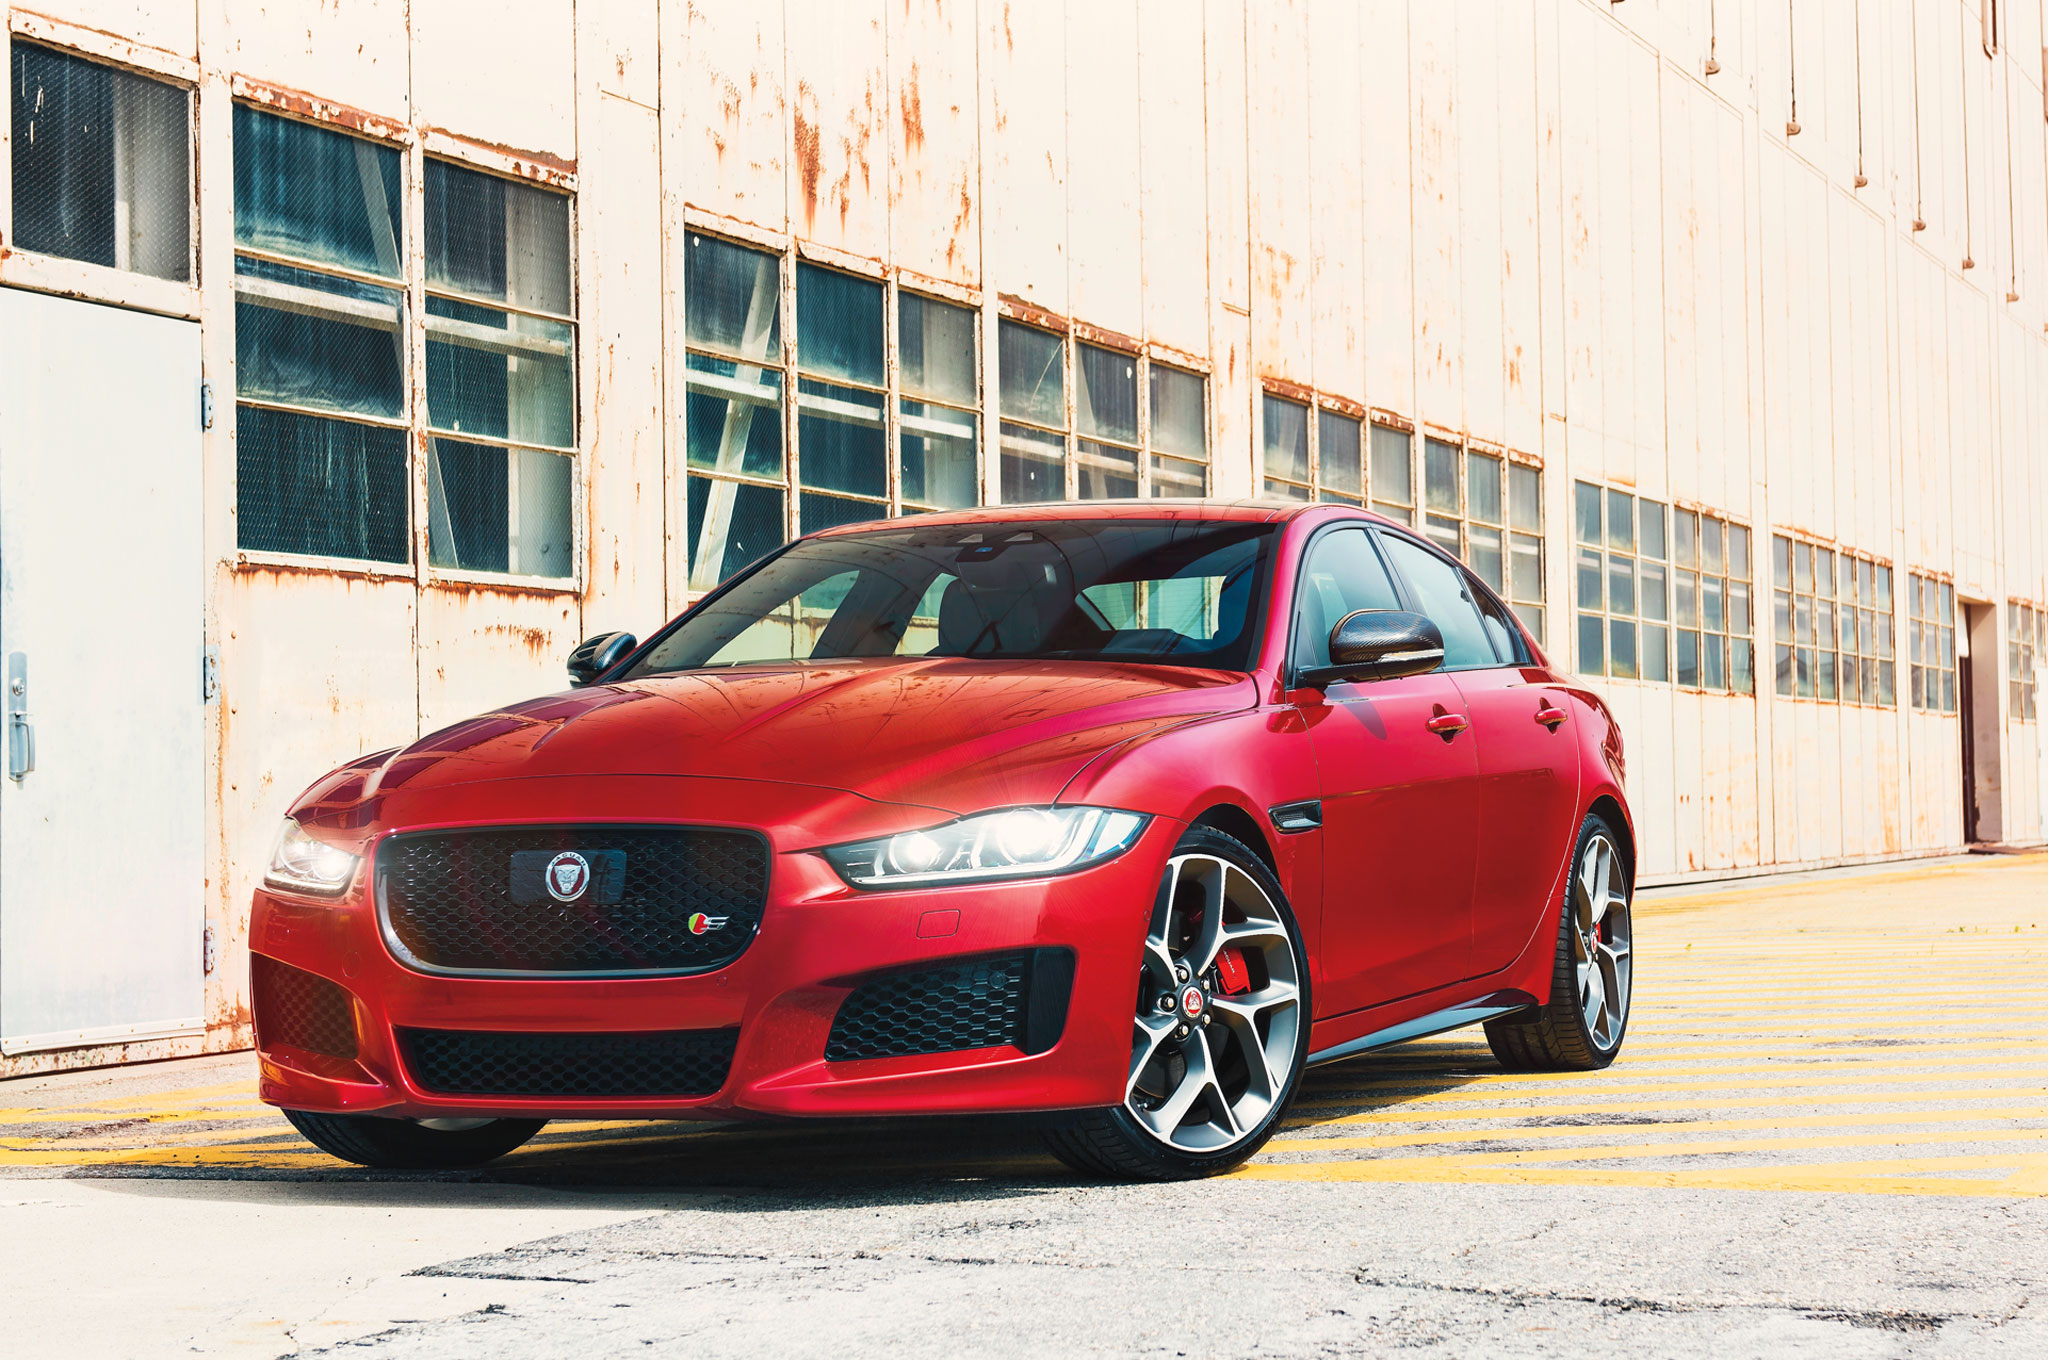 2016 Jaguar Xe Exterior Profile (View 9 of 12)